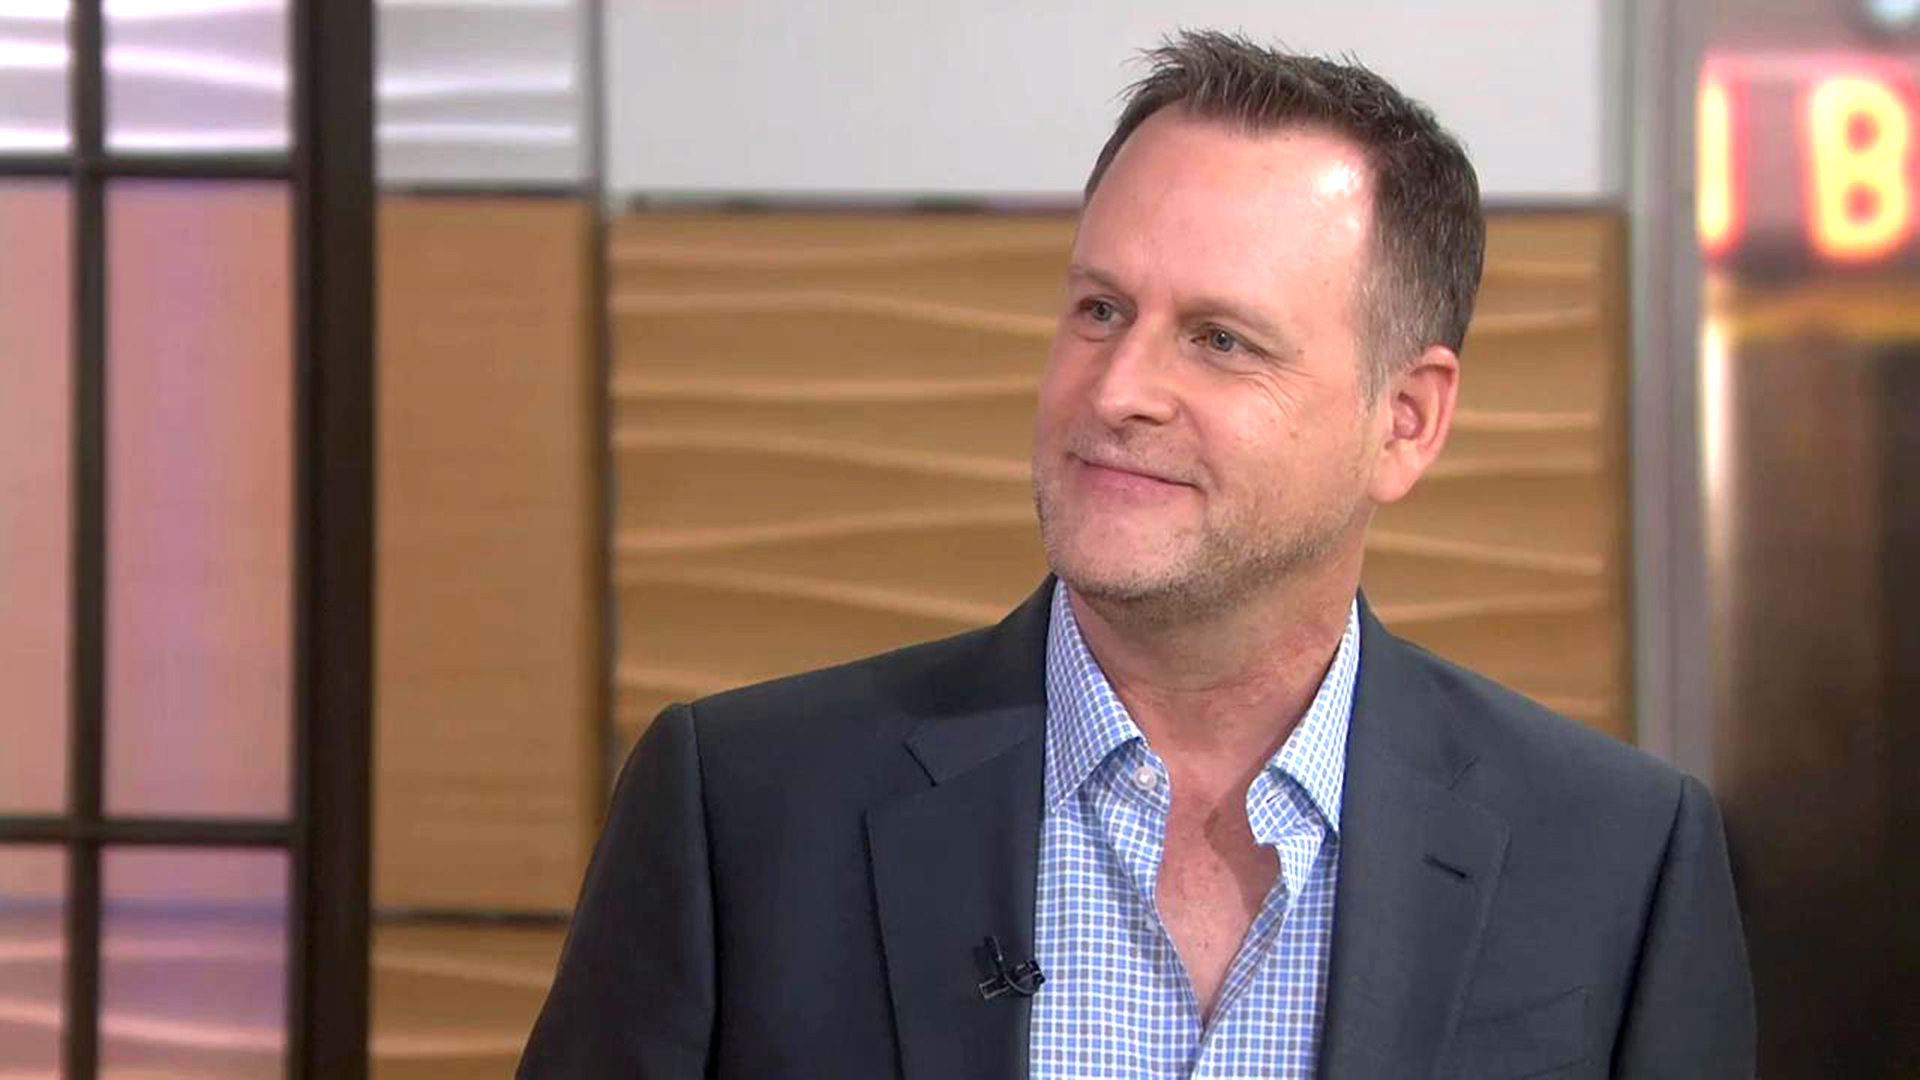 uncle joey never watched full house dave coulier vows to binge